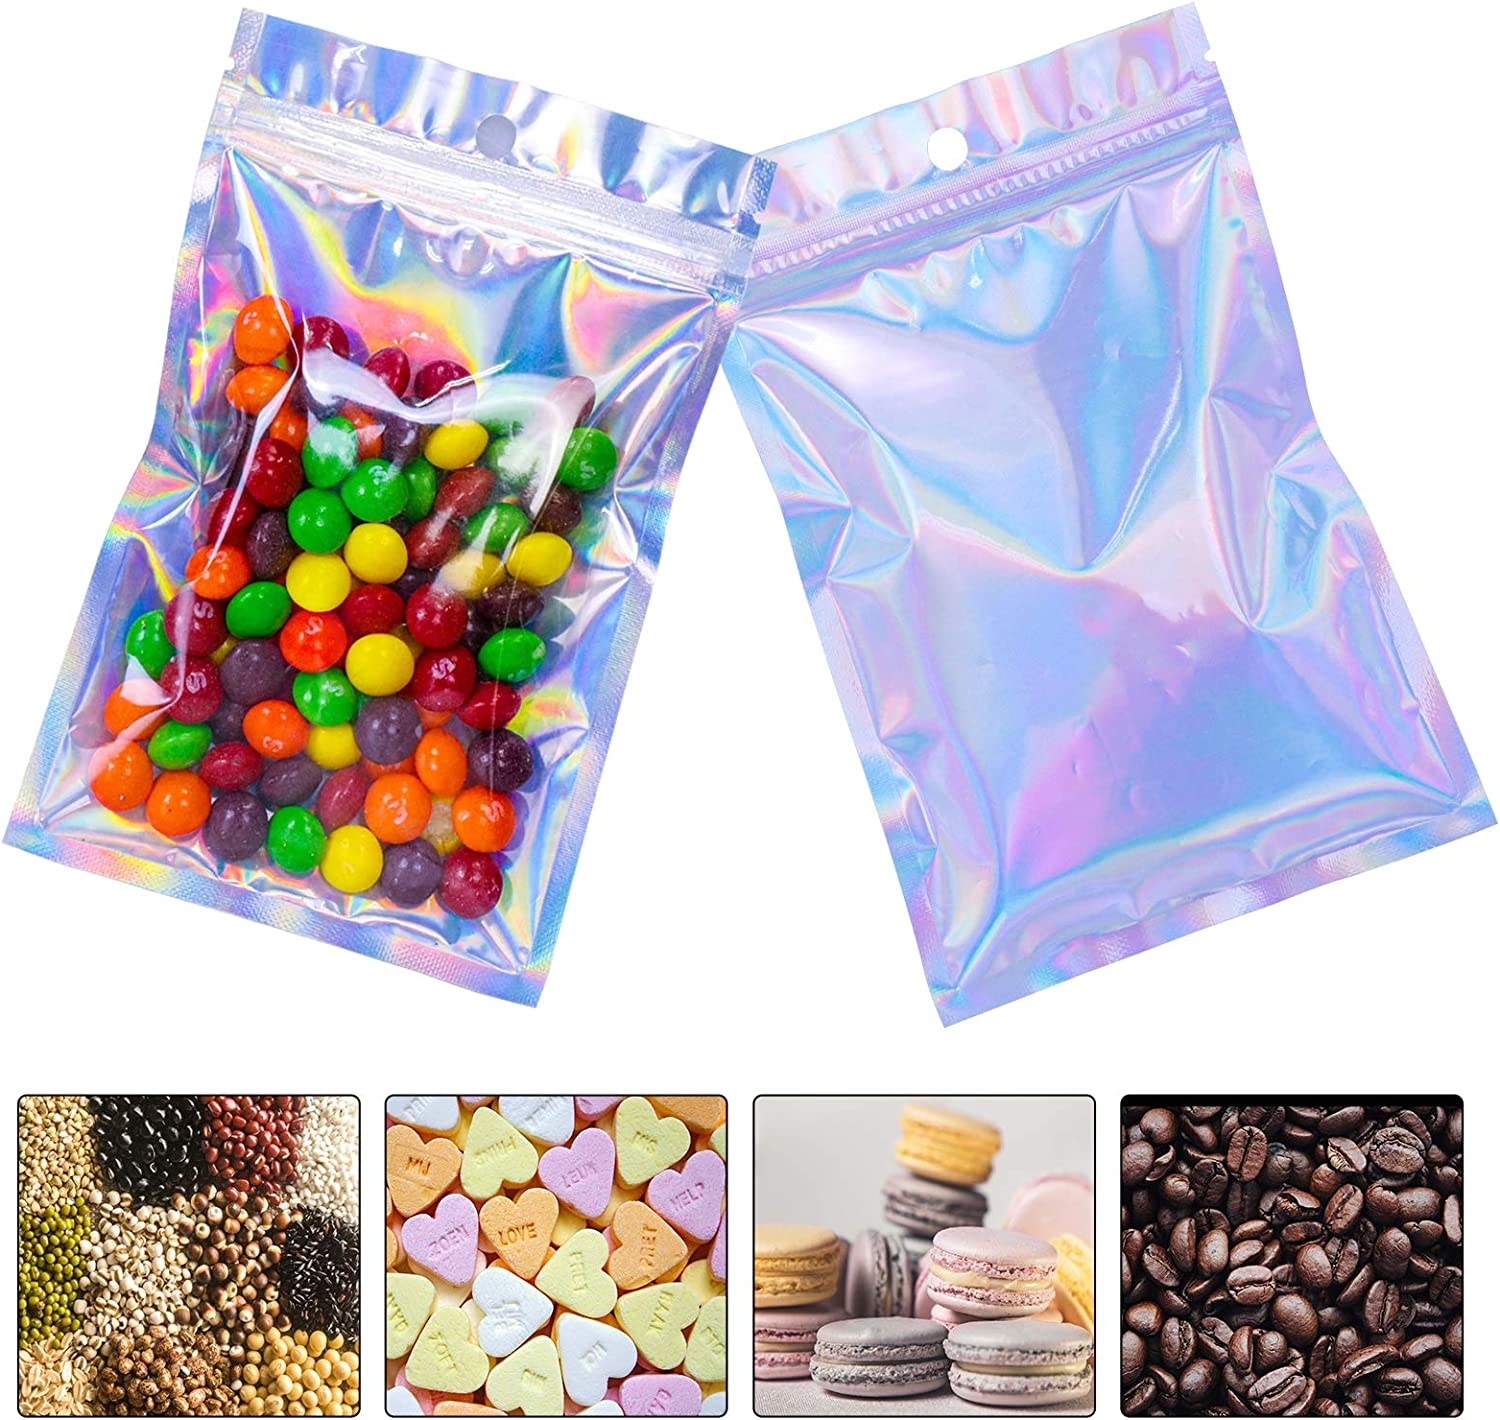 Mylar Bags for Food Storage, Resealable Mylar Bags with Ziplock 4 x 6 Inch 100 PCS Smell Proof Bags Holographic Packaging Bags Foil Pouch Bag Flat Reclosable Edible Packaging Party Favor Food Storage